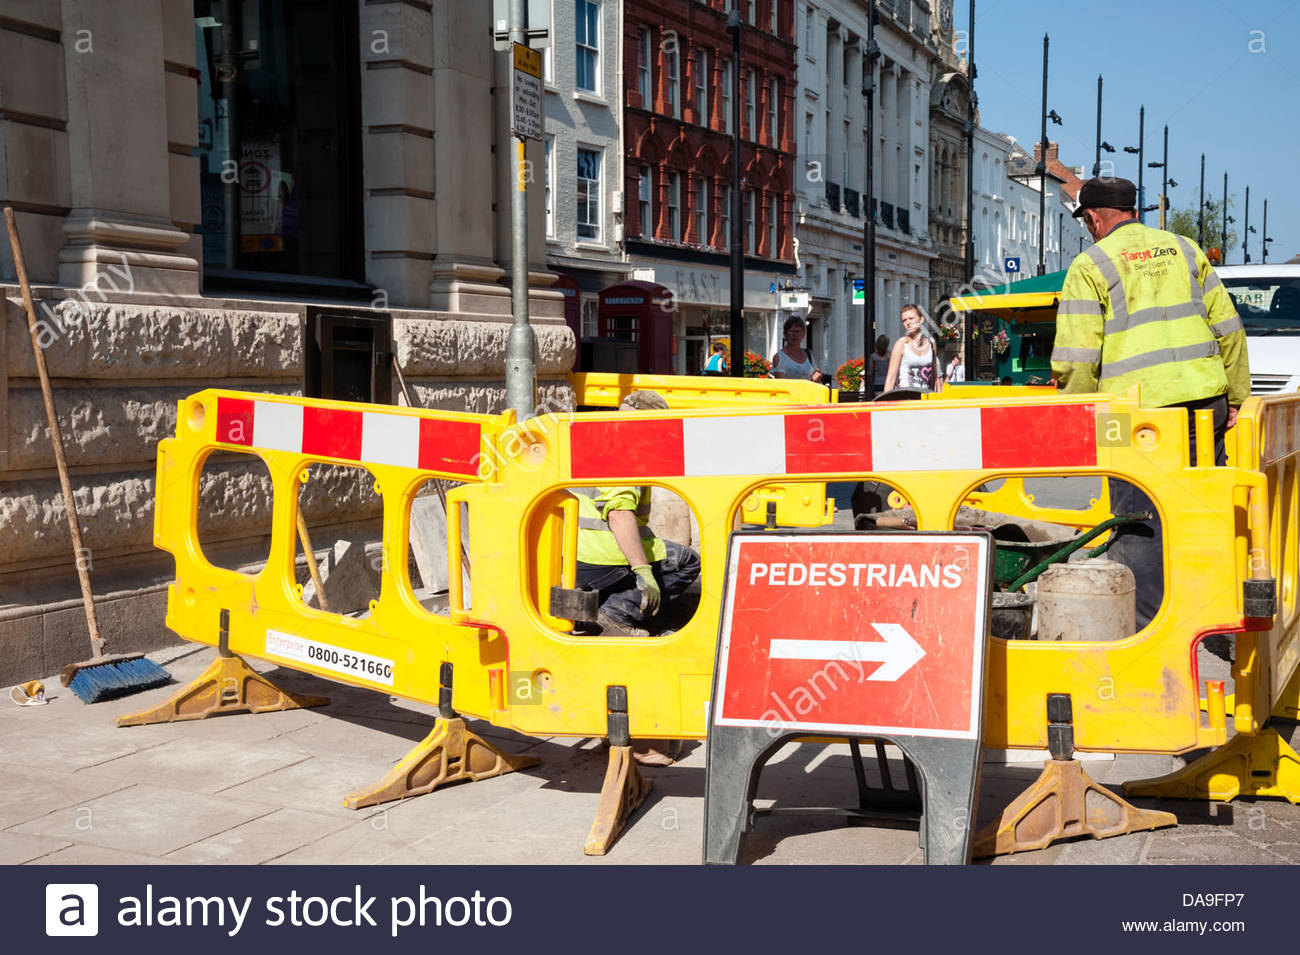 Work men digging up the pavement in Hereford, UK. - Stock Image